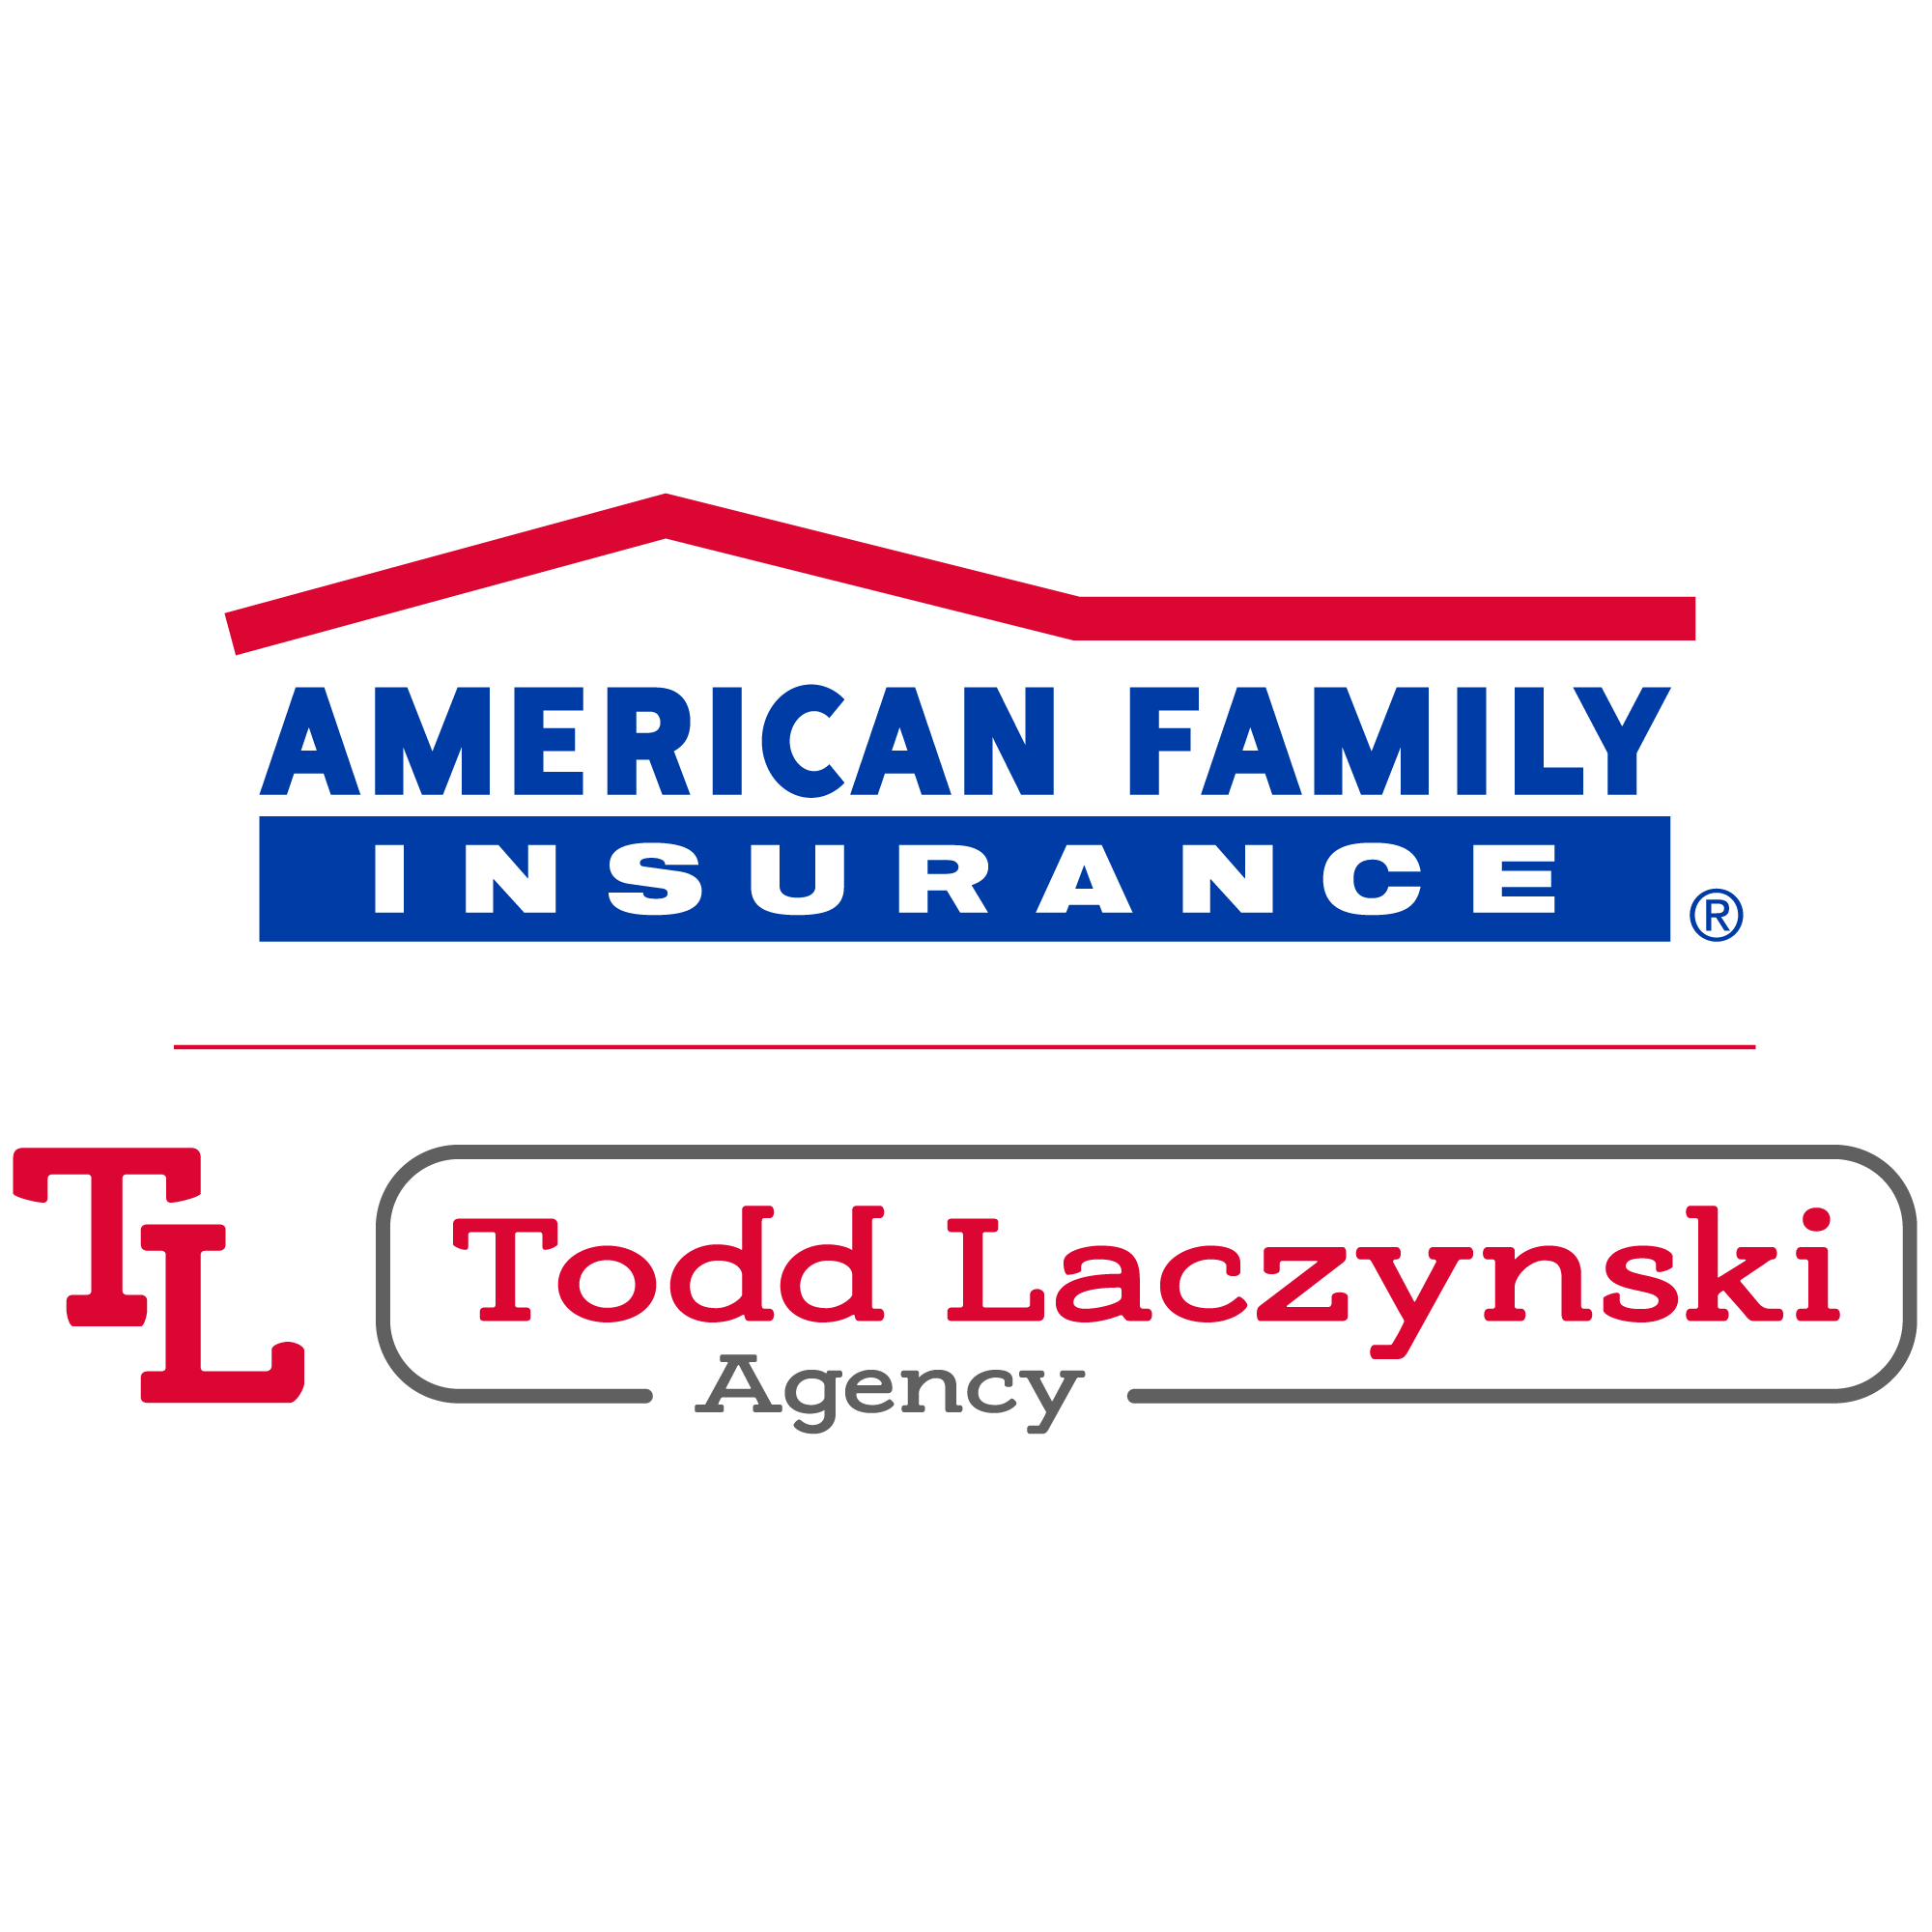 Todd Laczynski Agency -American Family Insurance